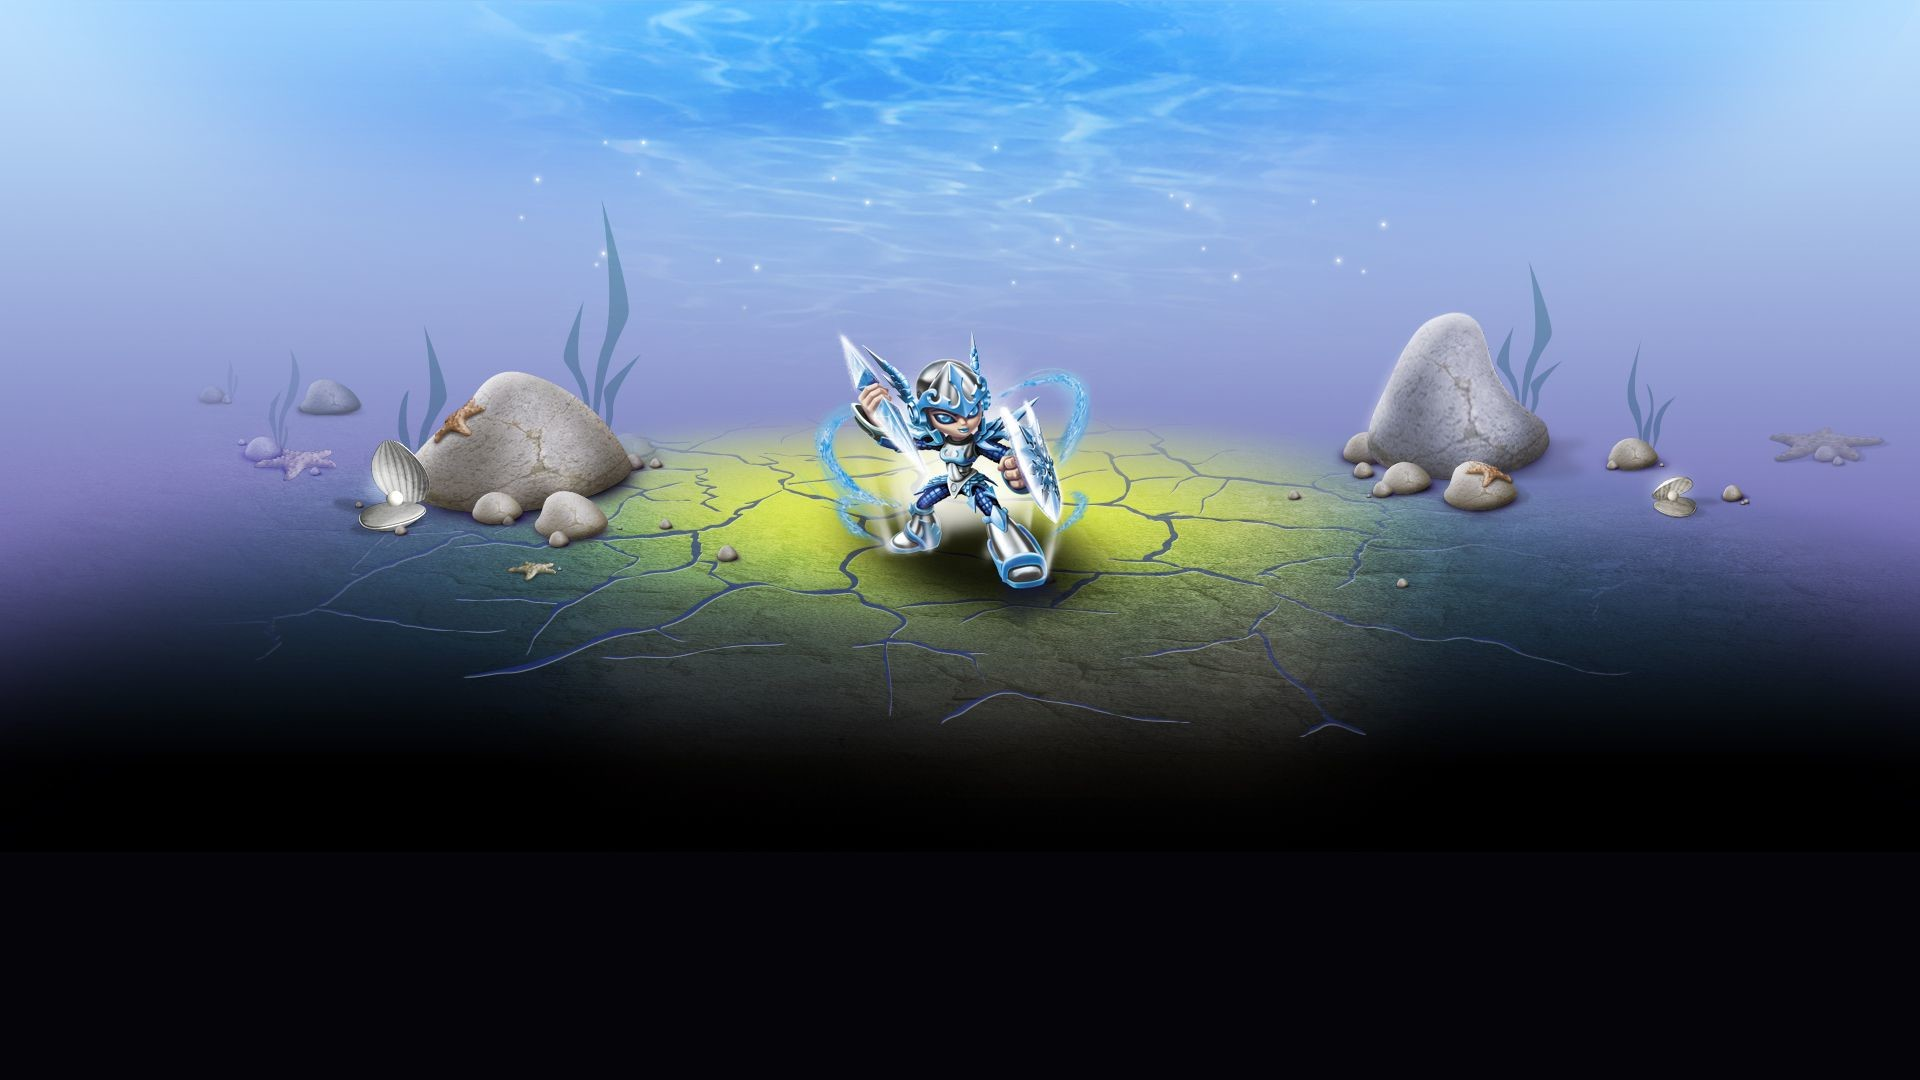 Skylanders Giants images Chill Wallpaper HD wallpaper and background photos